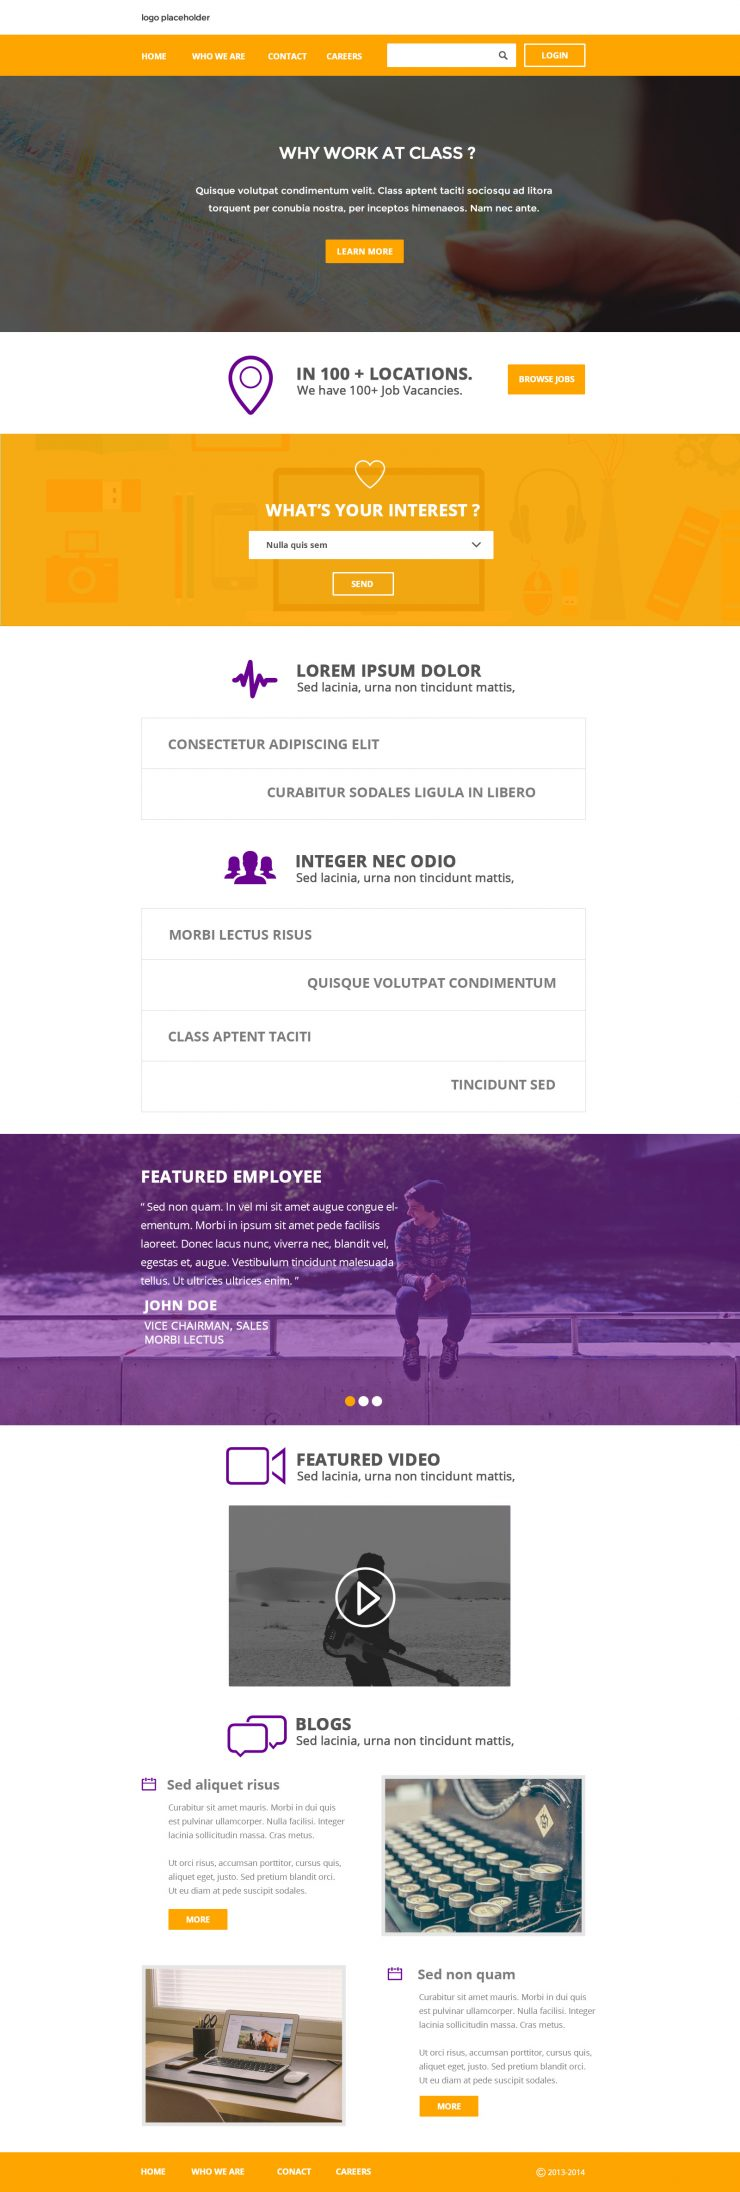 Flat Clean Corporate Layout PSD Template yellow, www, Website Template, Website Layout, Website, webpage, Web Template, Web Resources, web page, Web Layout, Web Interface, Web Elements, Web Design, Web, User Interface, unique, UI, Template, Stylish, Resources, Quality, Psd Templates, original, new, Modern, Fresh, flat template, flat style, flat psd, Flat, Elements, detailed, Design, Creative, Corporate, Clean,